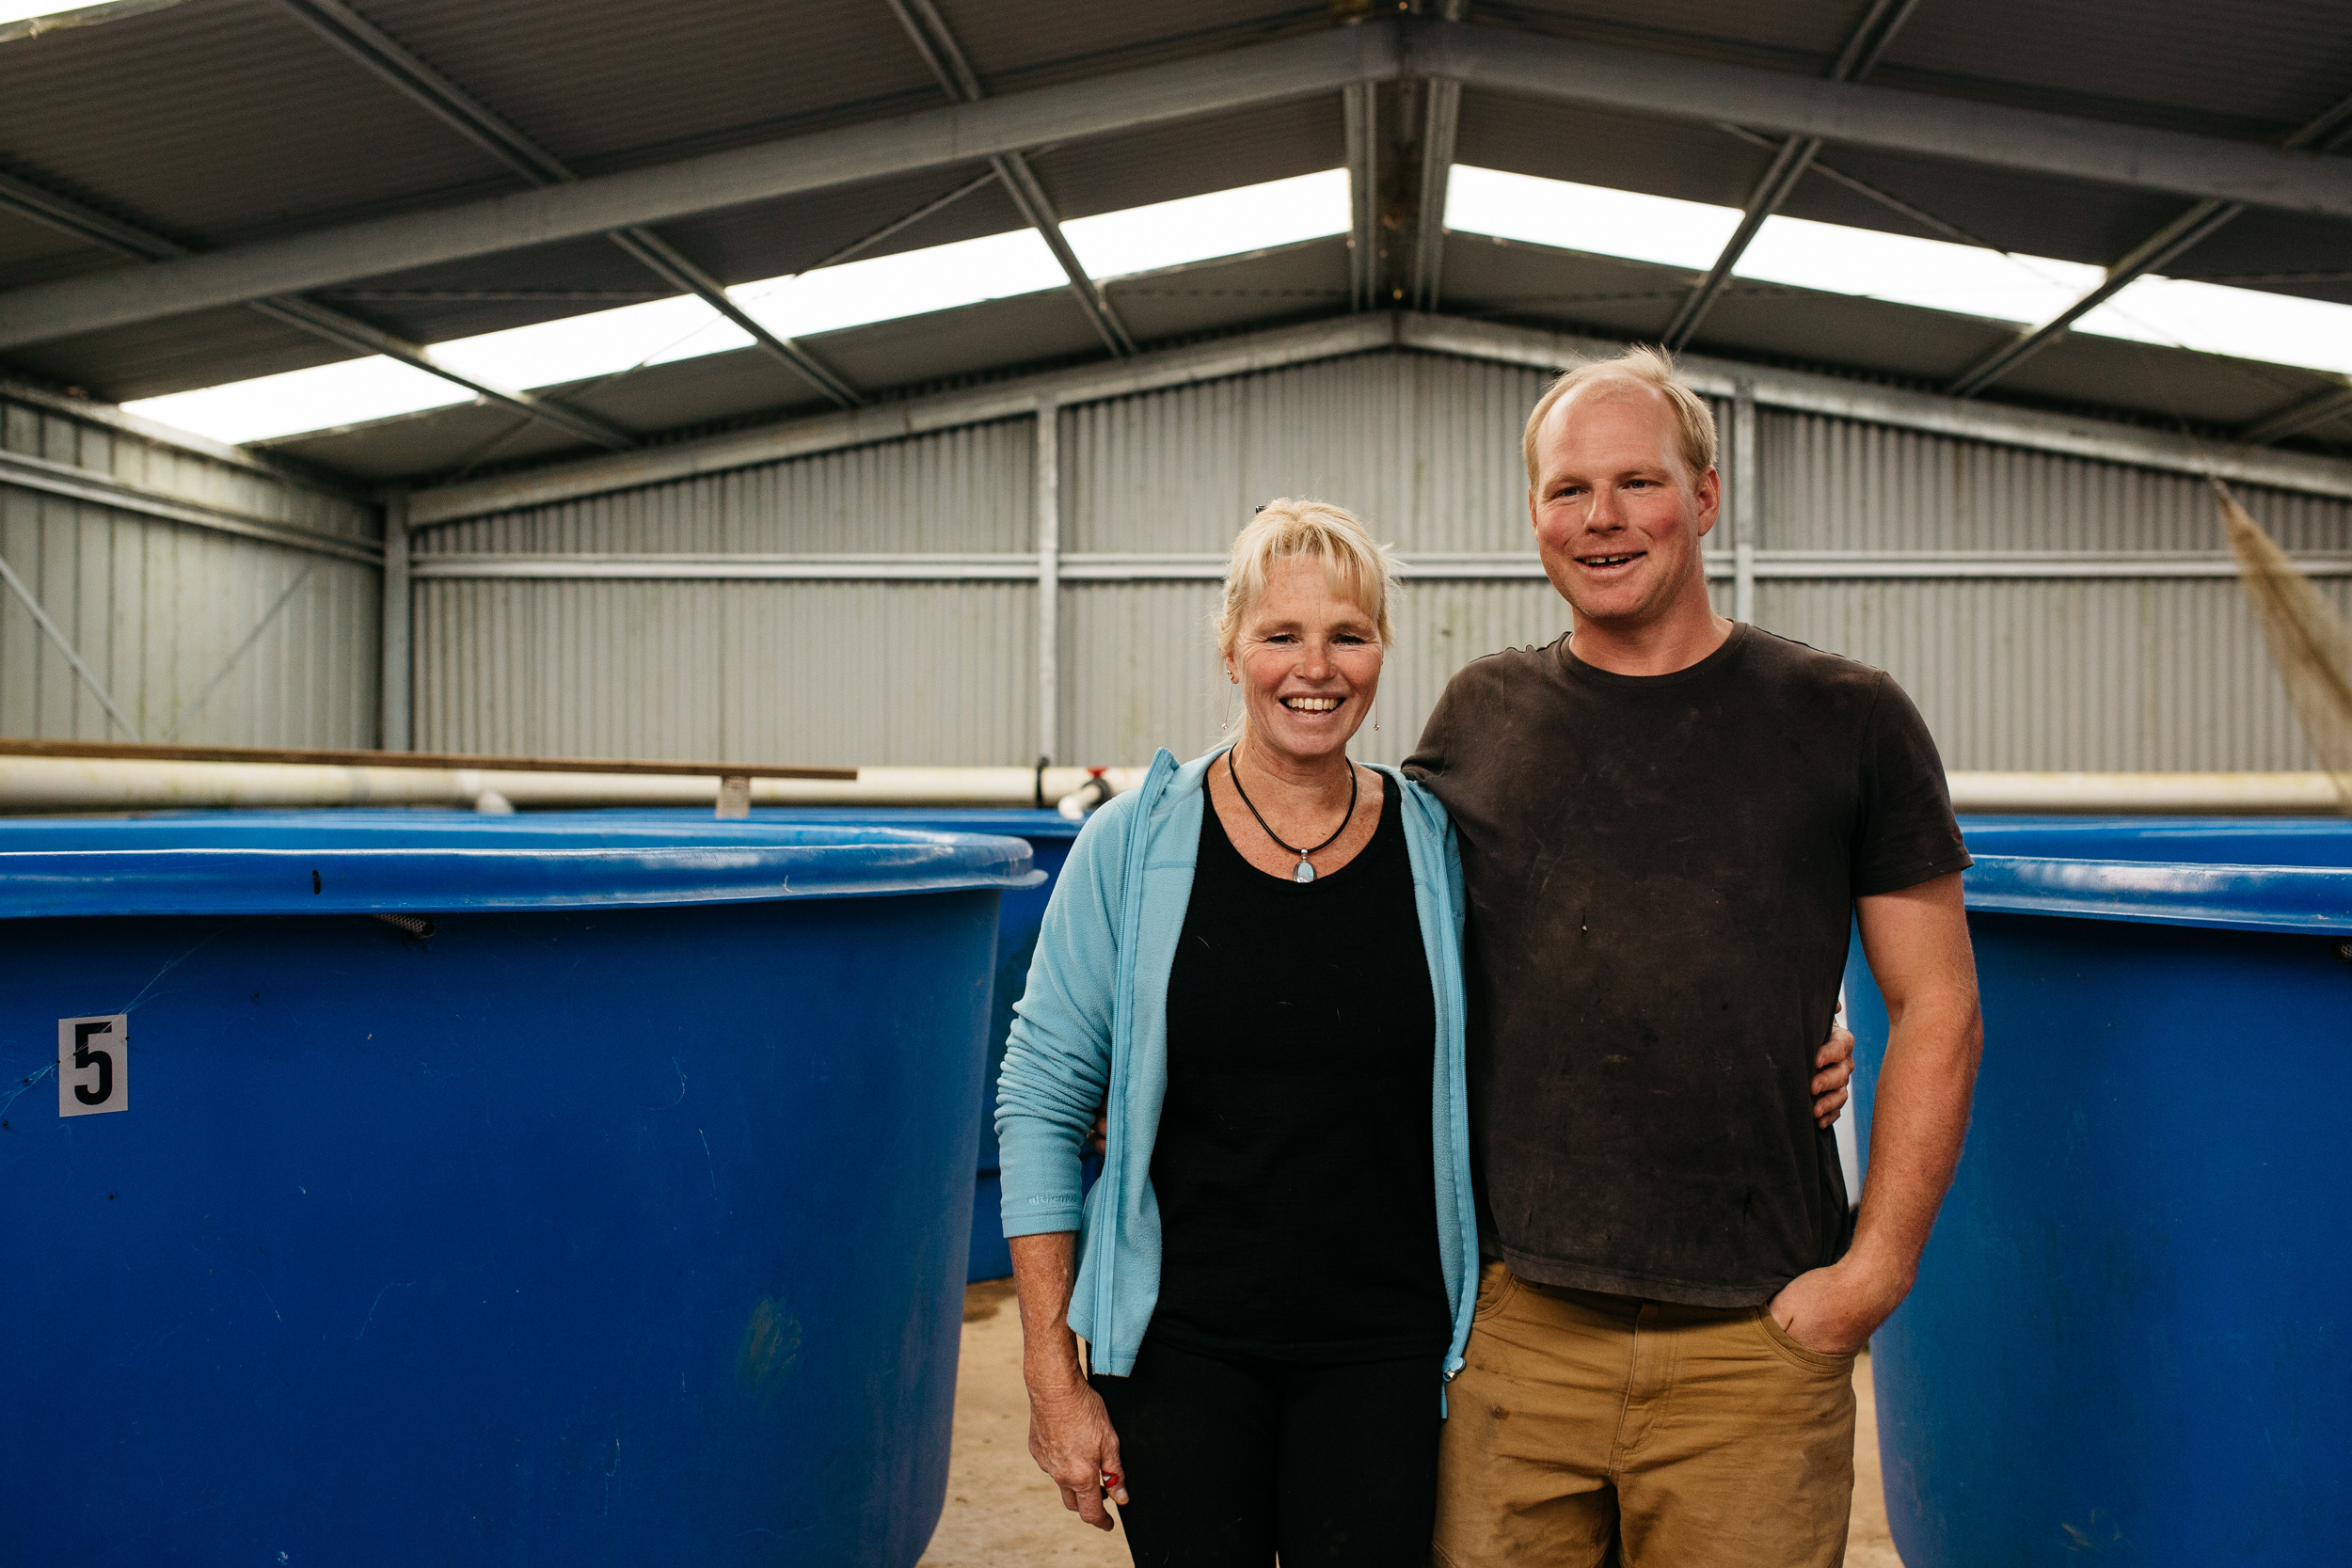 Sally Hall with her son David and fish tanks in the background, Mountain Fresh Trout and Salmon Farm, Harrietville (Victoria), 2017, Photographer: Catherine Forge, Source: Museums Victoria.